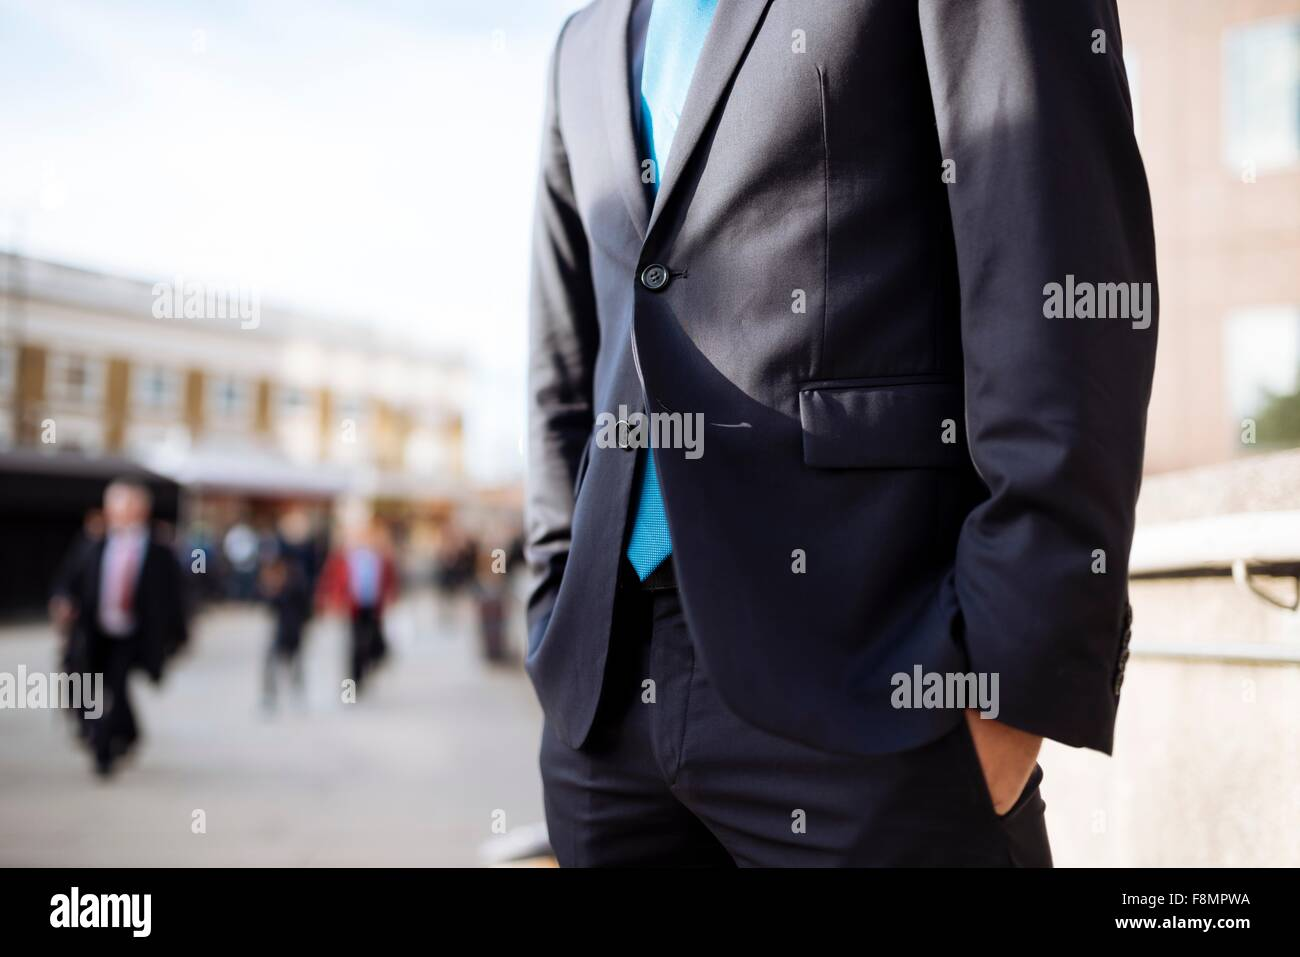 Businessman with hands in pocket, partially obscured, London, UK - Stock Image